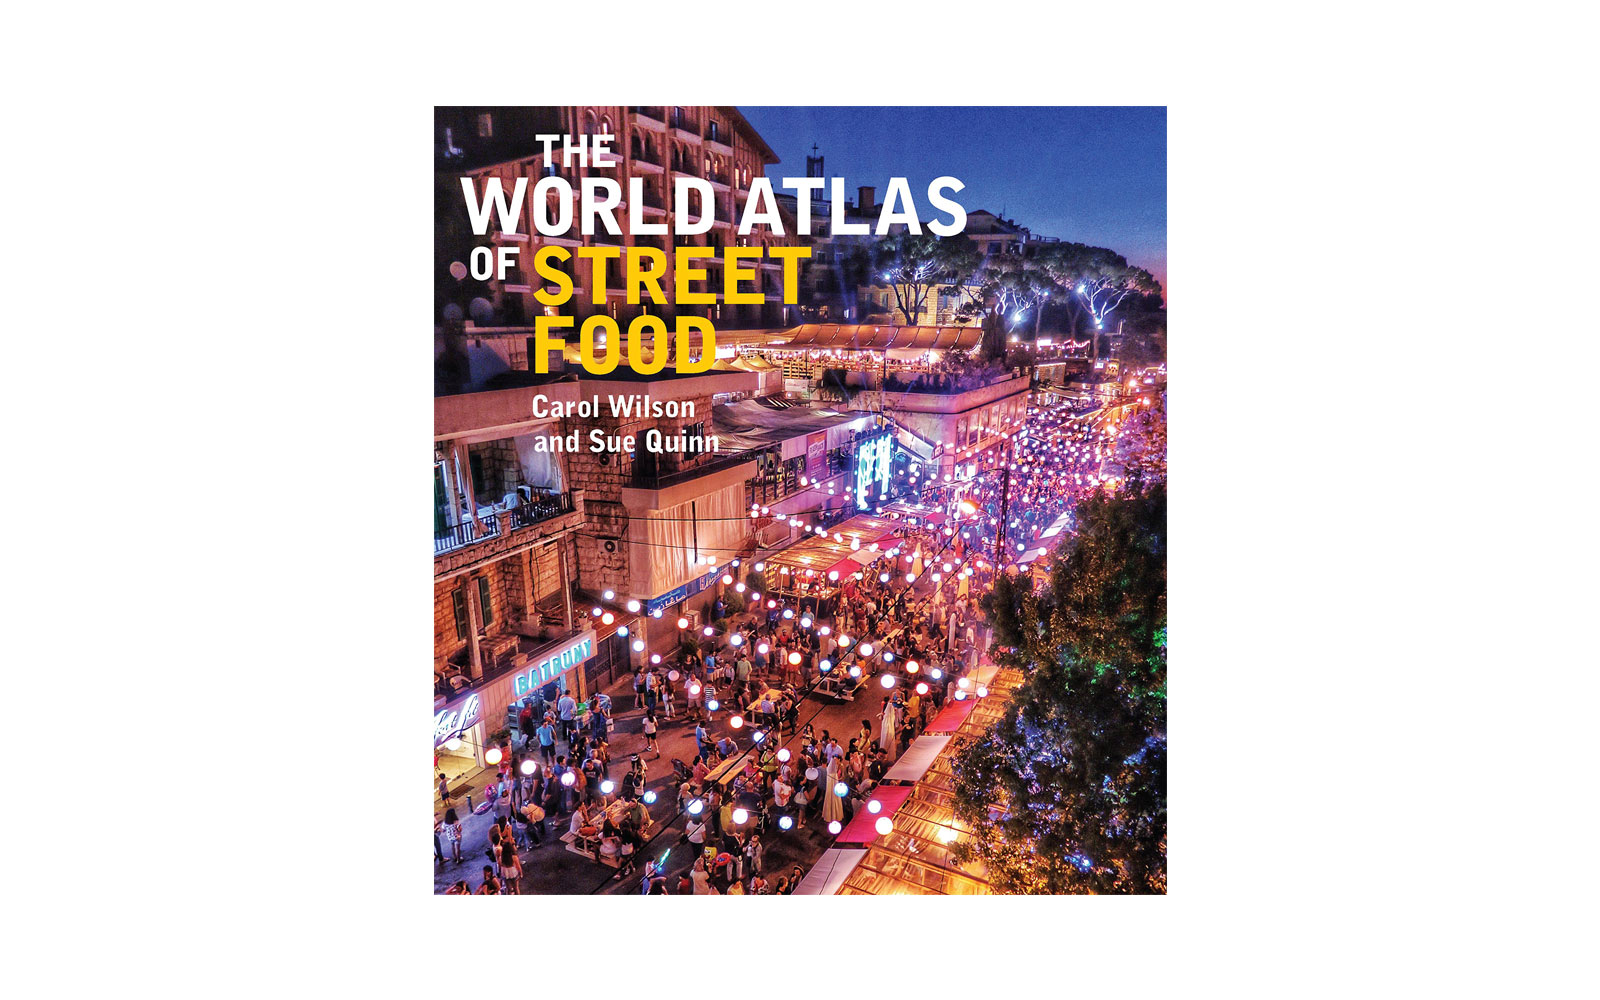 The World Atlas of Street Food, by Carol Wilson and Sue Quinn